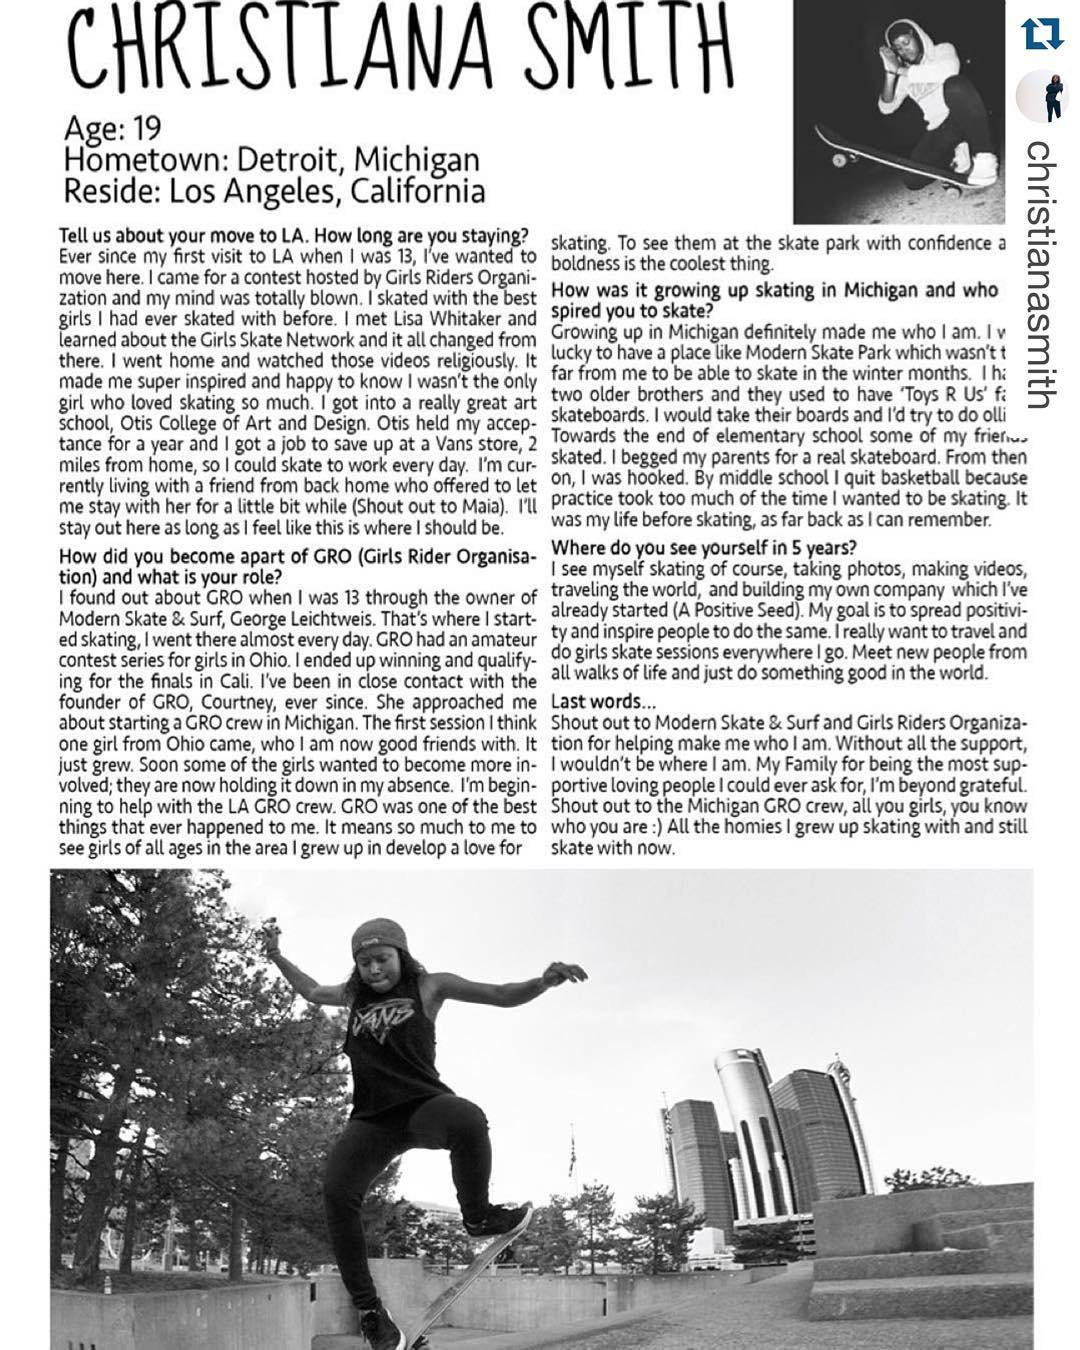 Check out GRO rider @christianasmith in @theskatewitches zine Link in bio ・・・ Get that new @theskatewitches zine